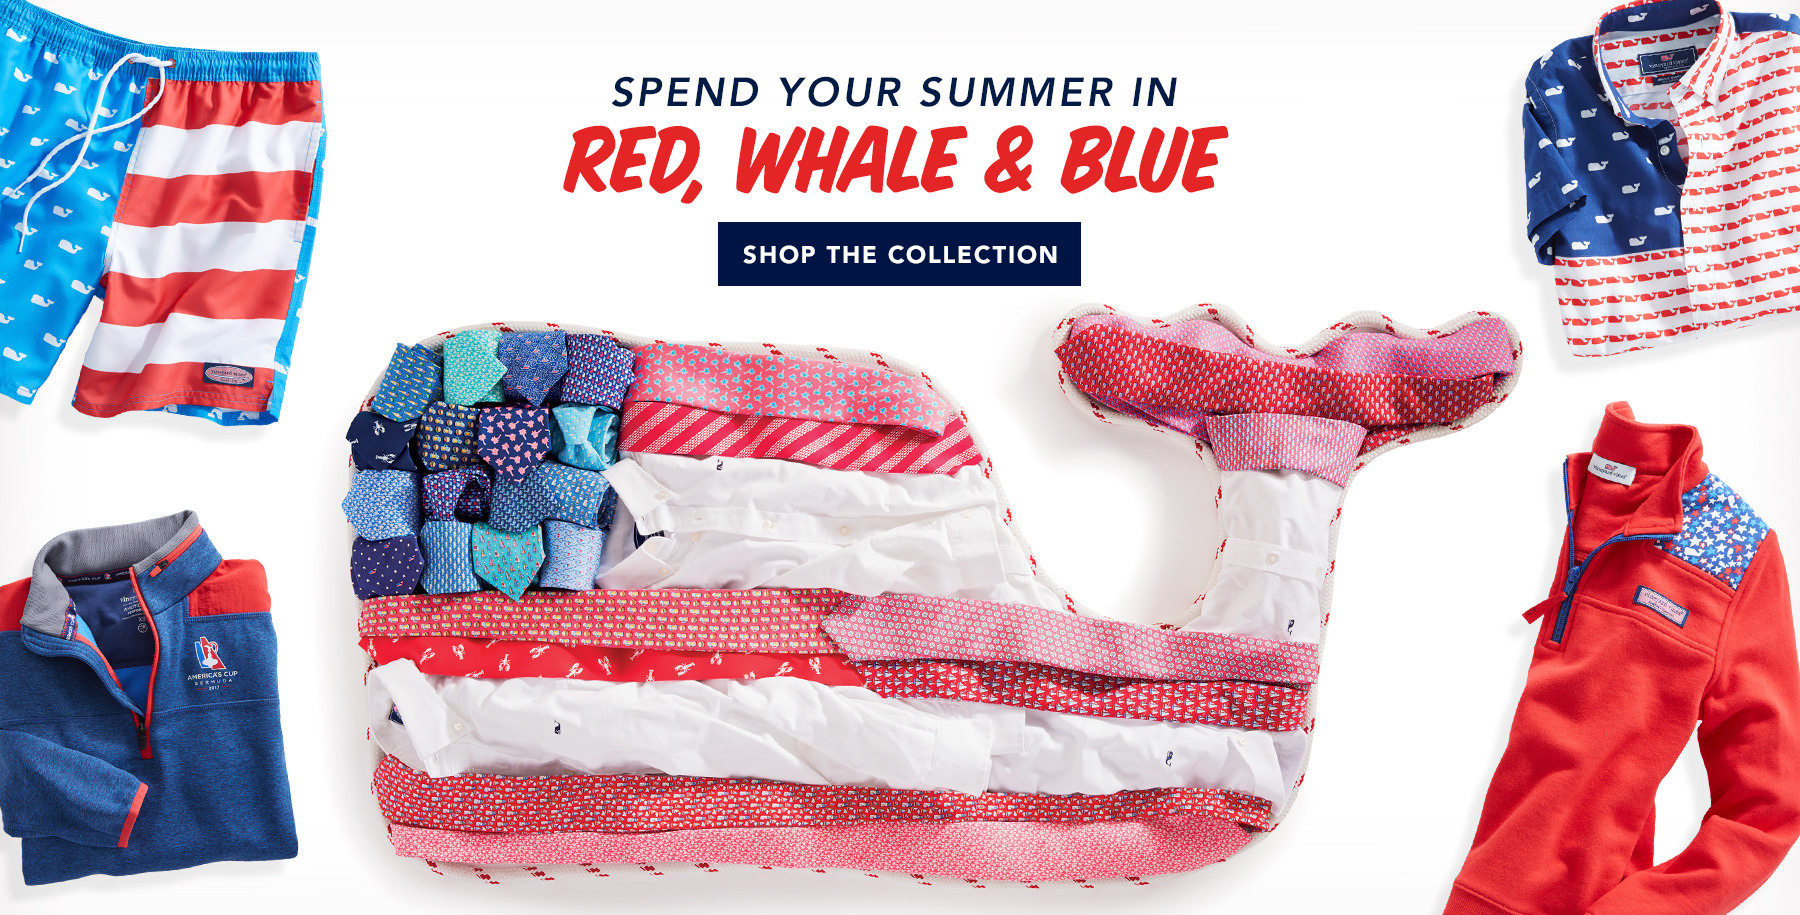 preppy men u2019s clothing  women u2019s clothing and men u2019s silk ties  u2013 vineyard vines